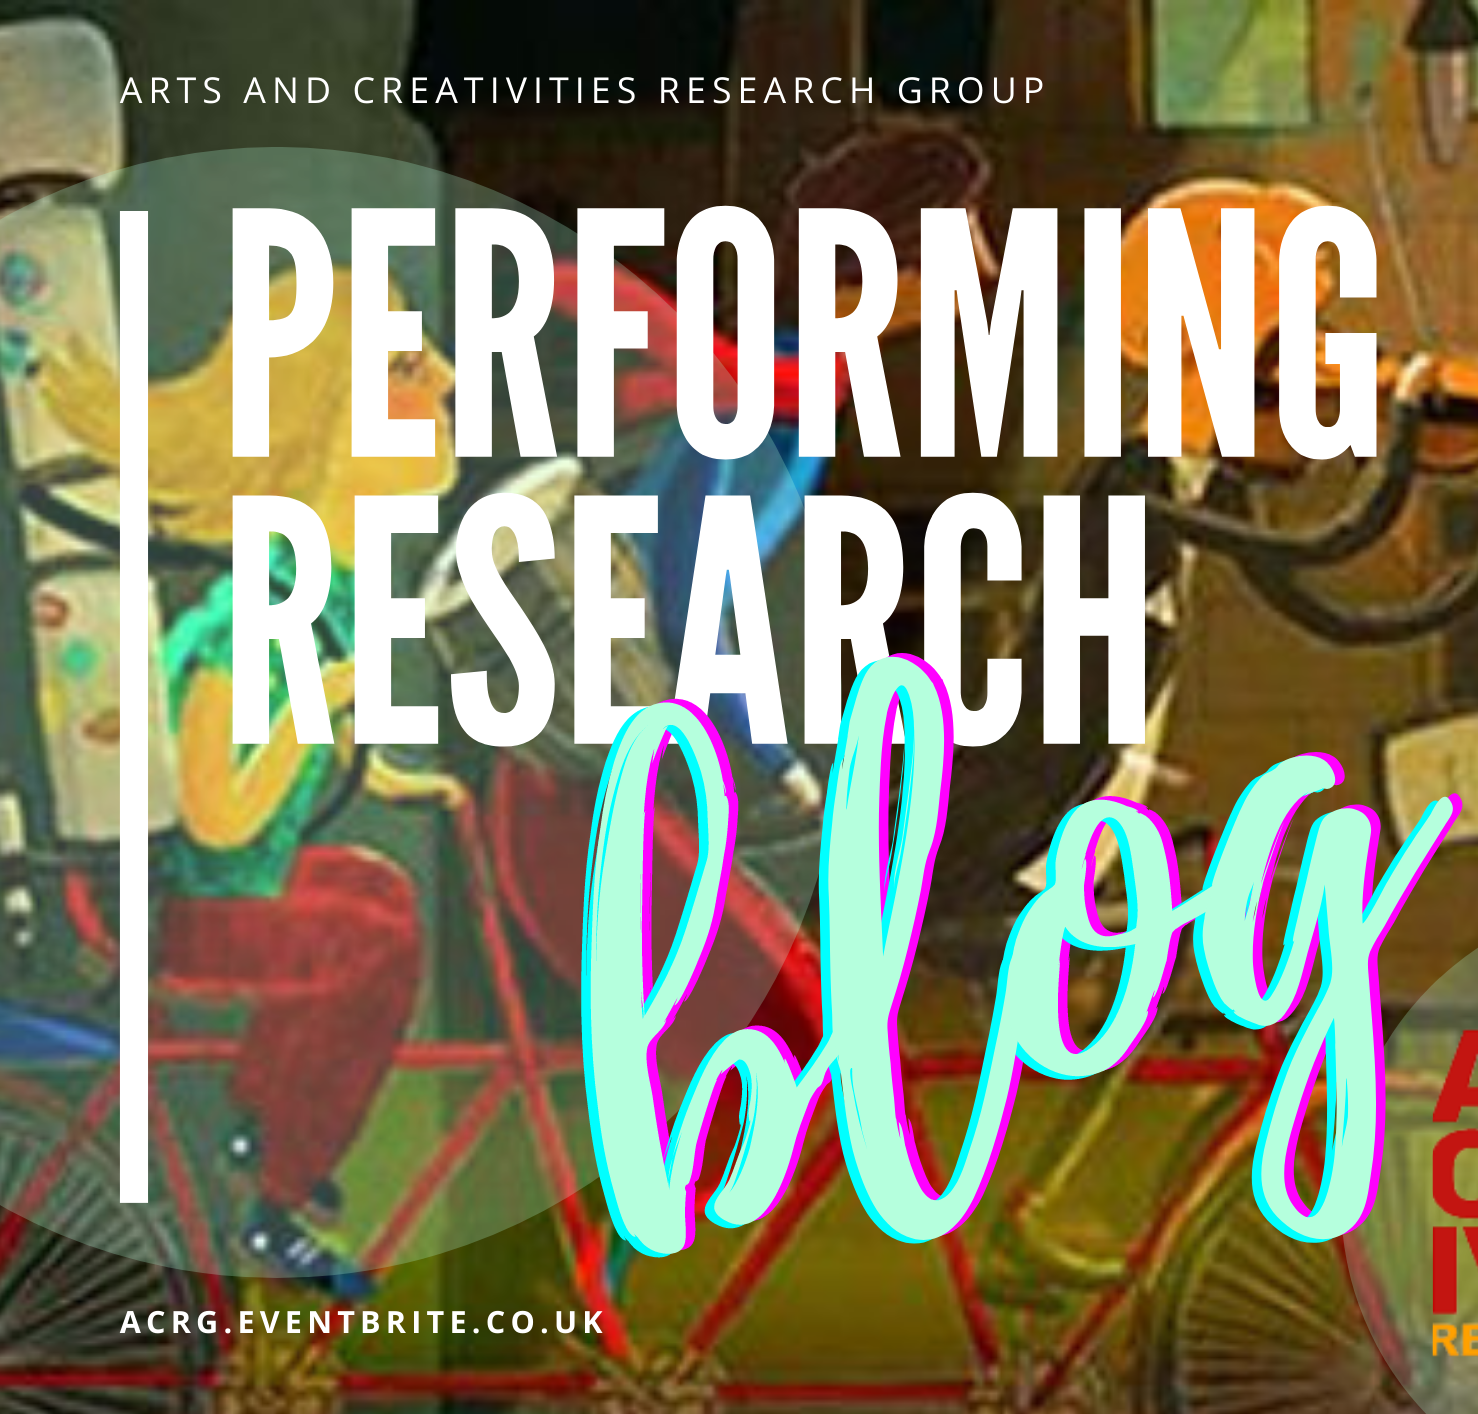 Arts and Creativities Research Group Blog